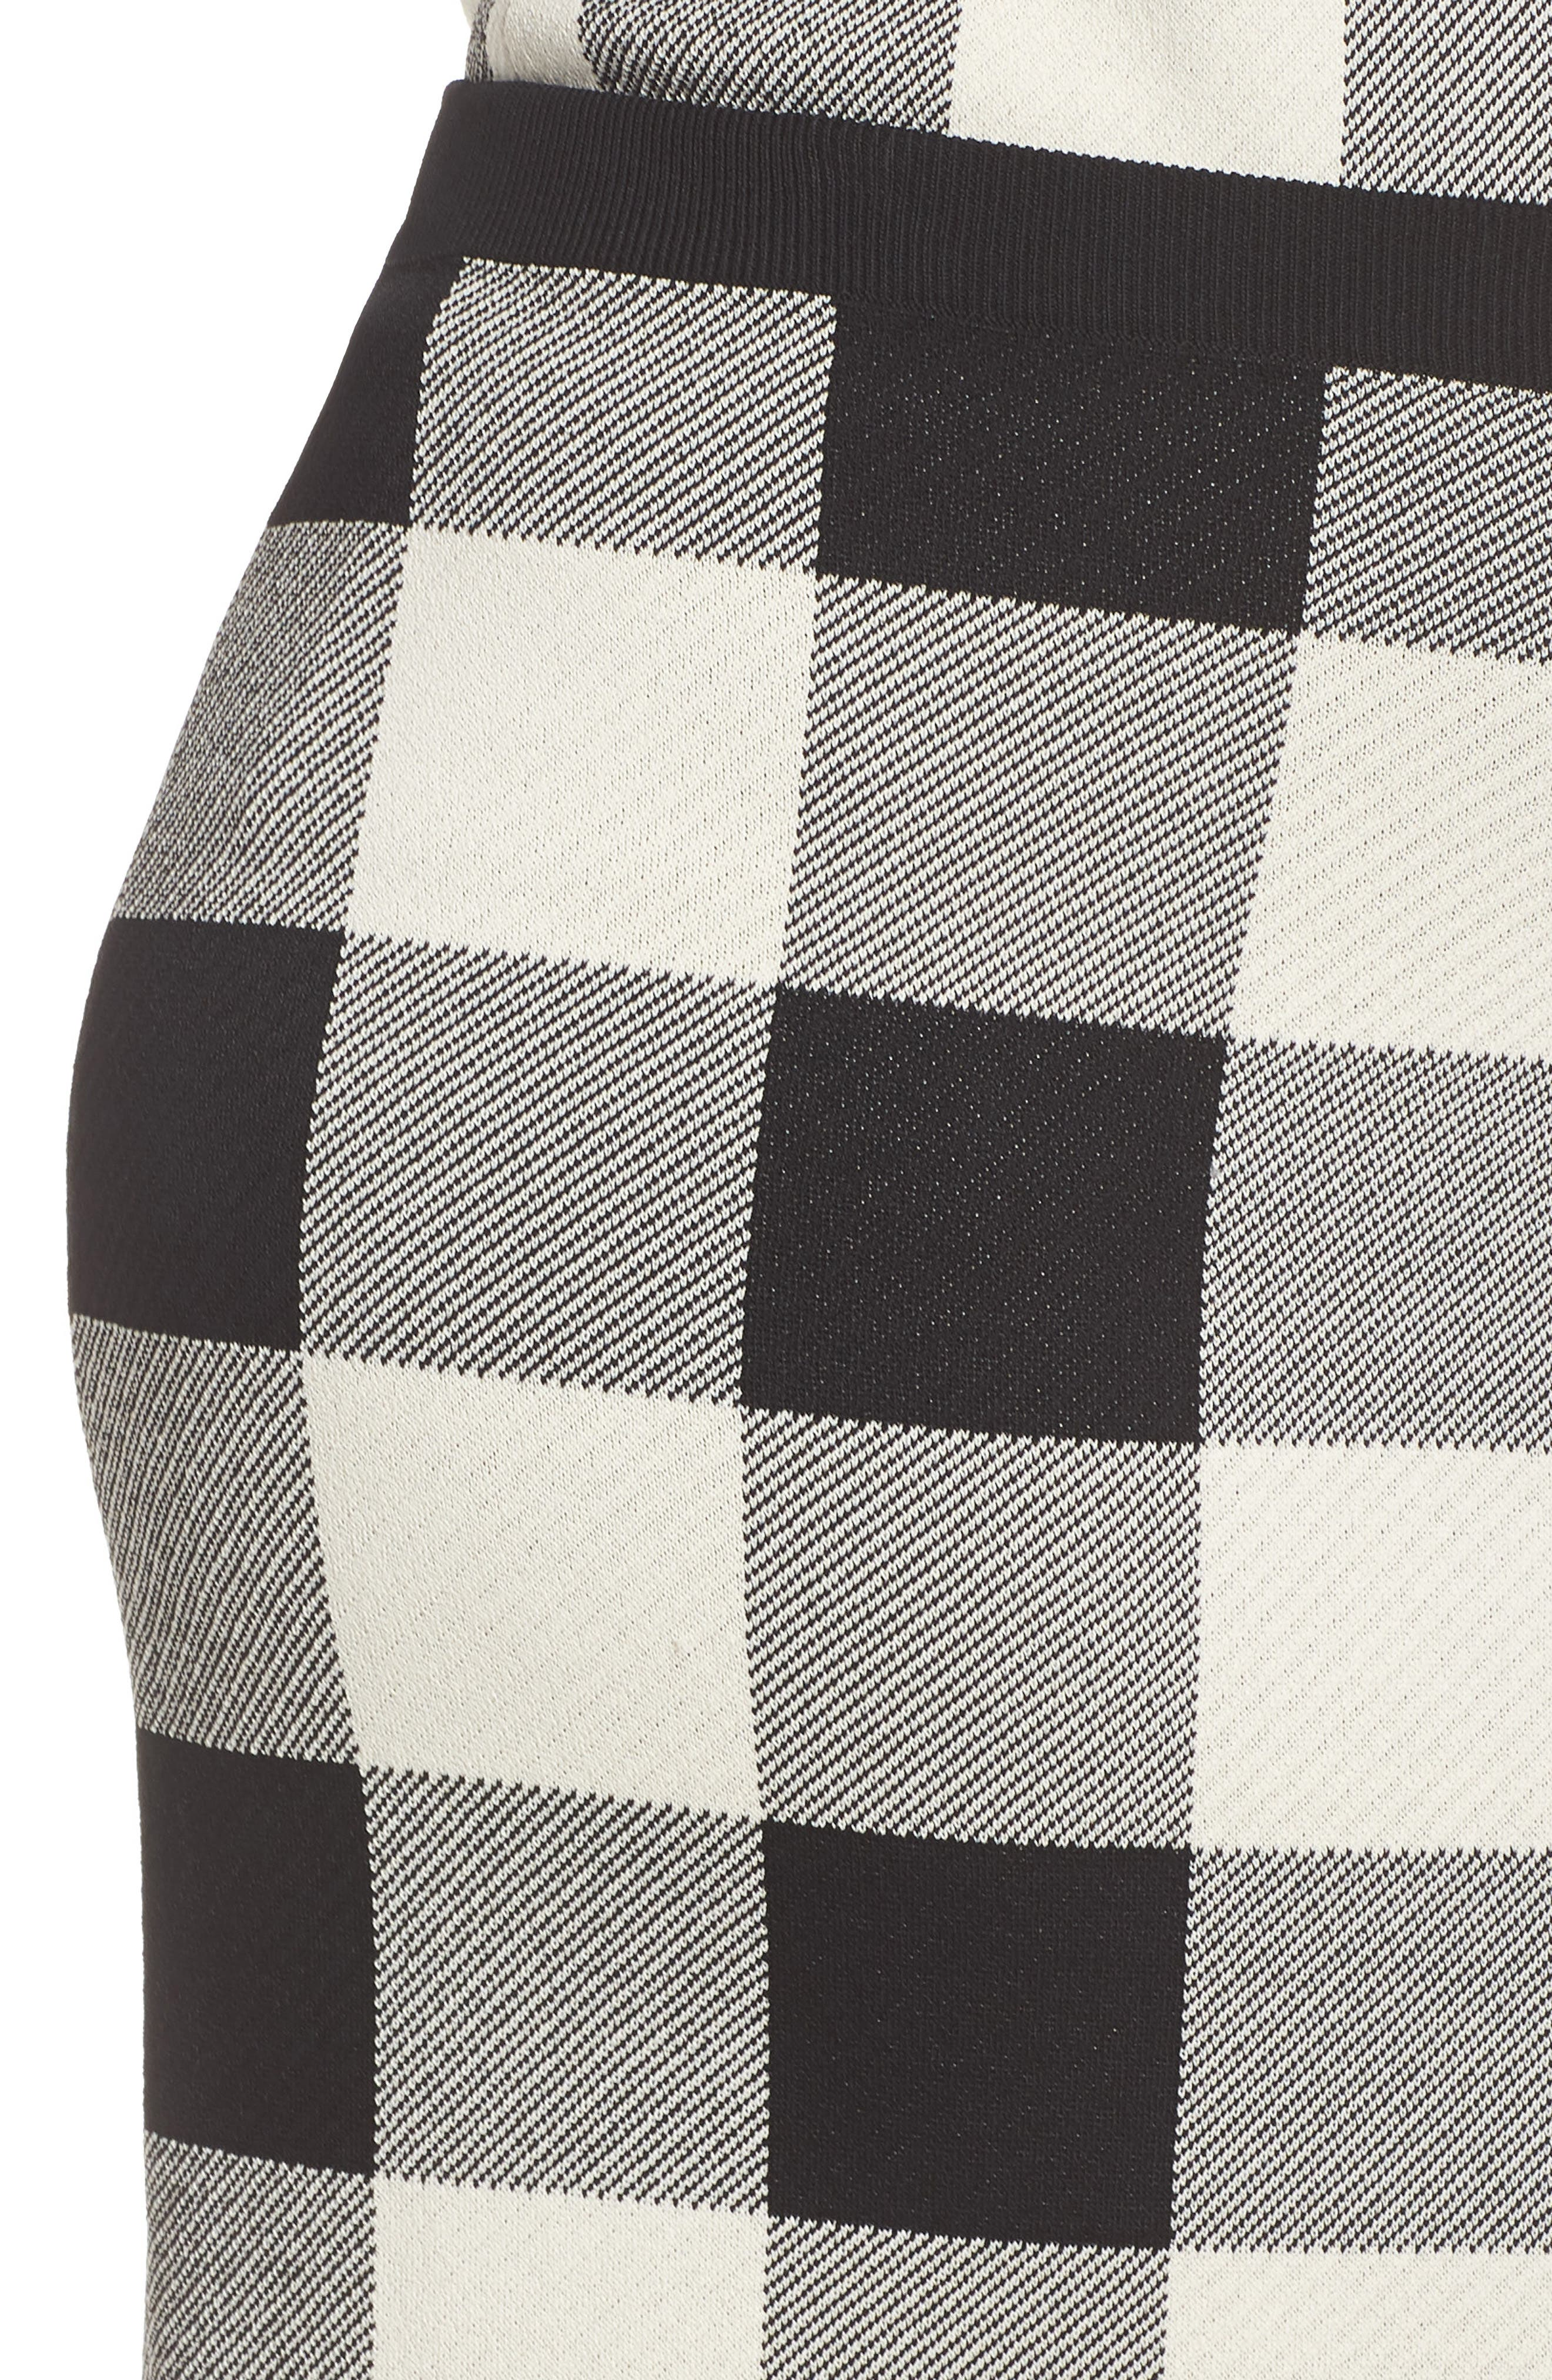 RACHEL RACHEL ROY,                             Raj Sweater Skirt,                             Alternate thumbnail 4, color,                             BLACK/CREAM